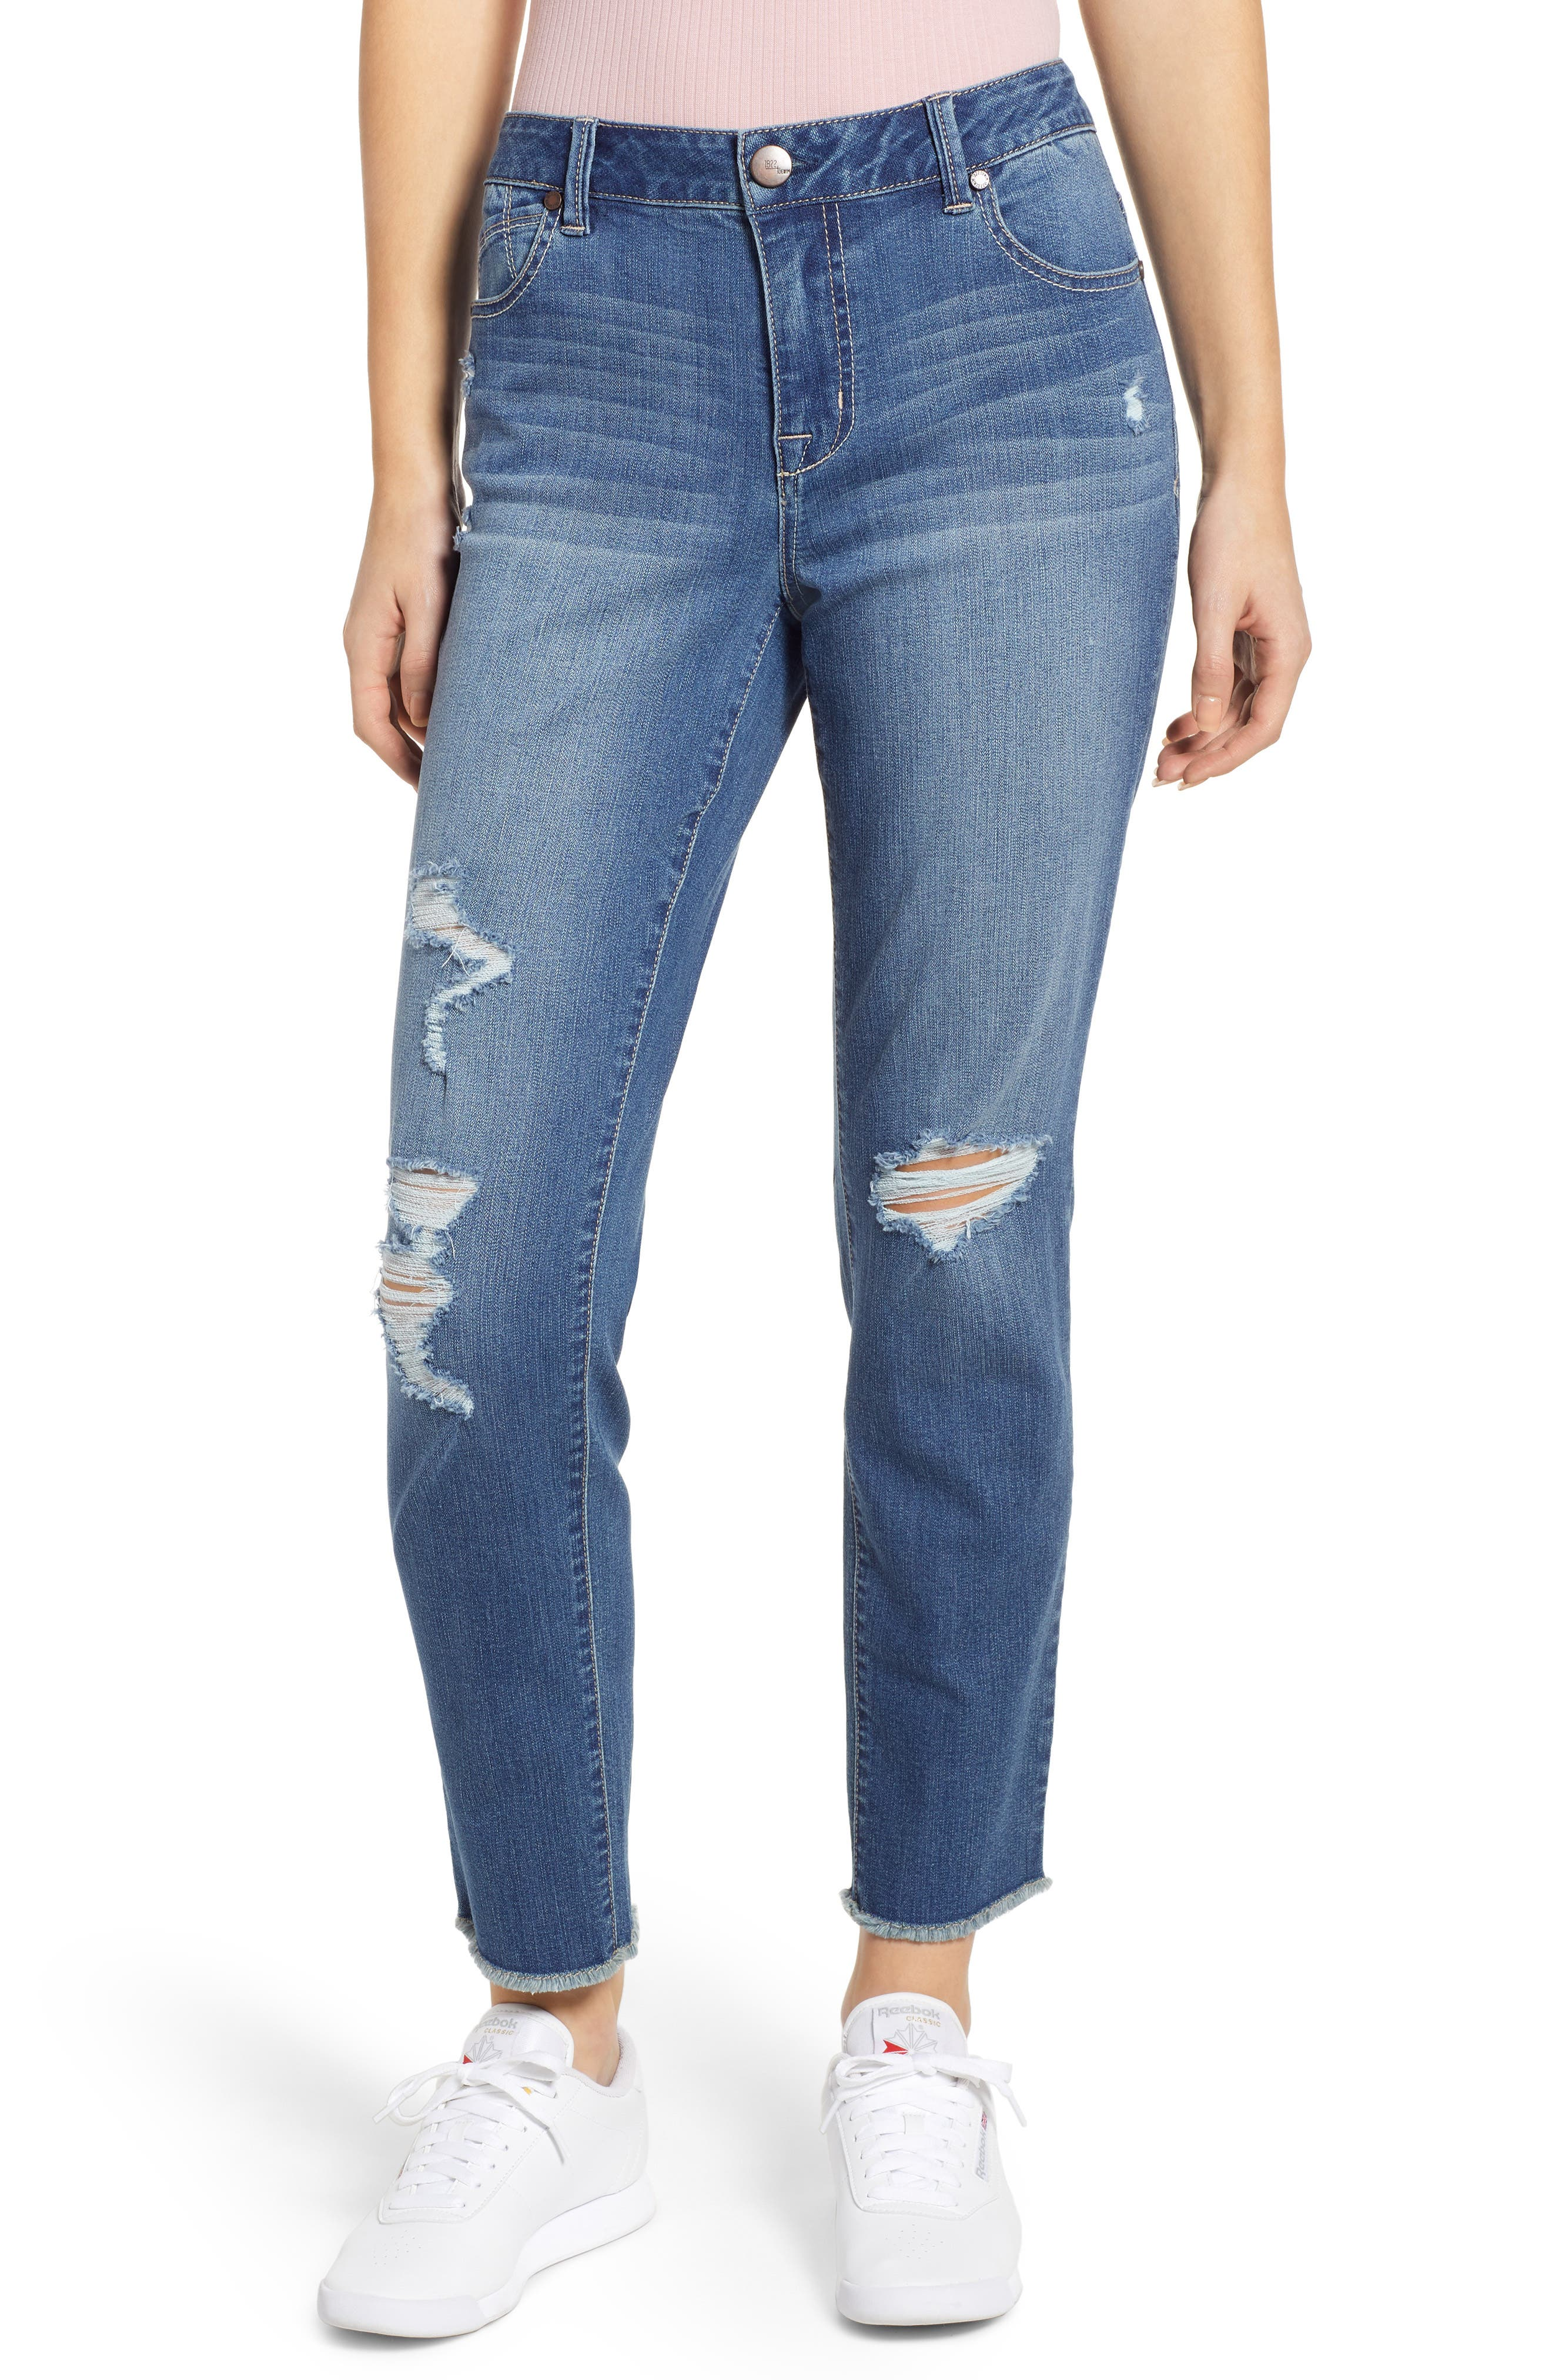 Image of 1822 Denim High Rise Distressed Mom Jeans